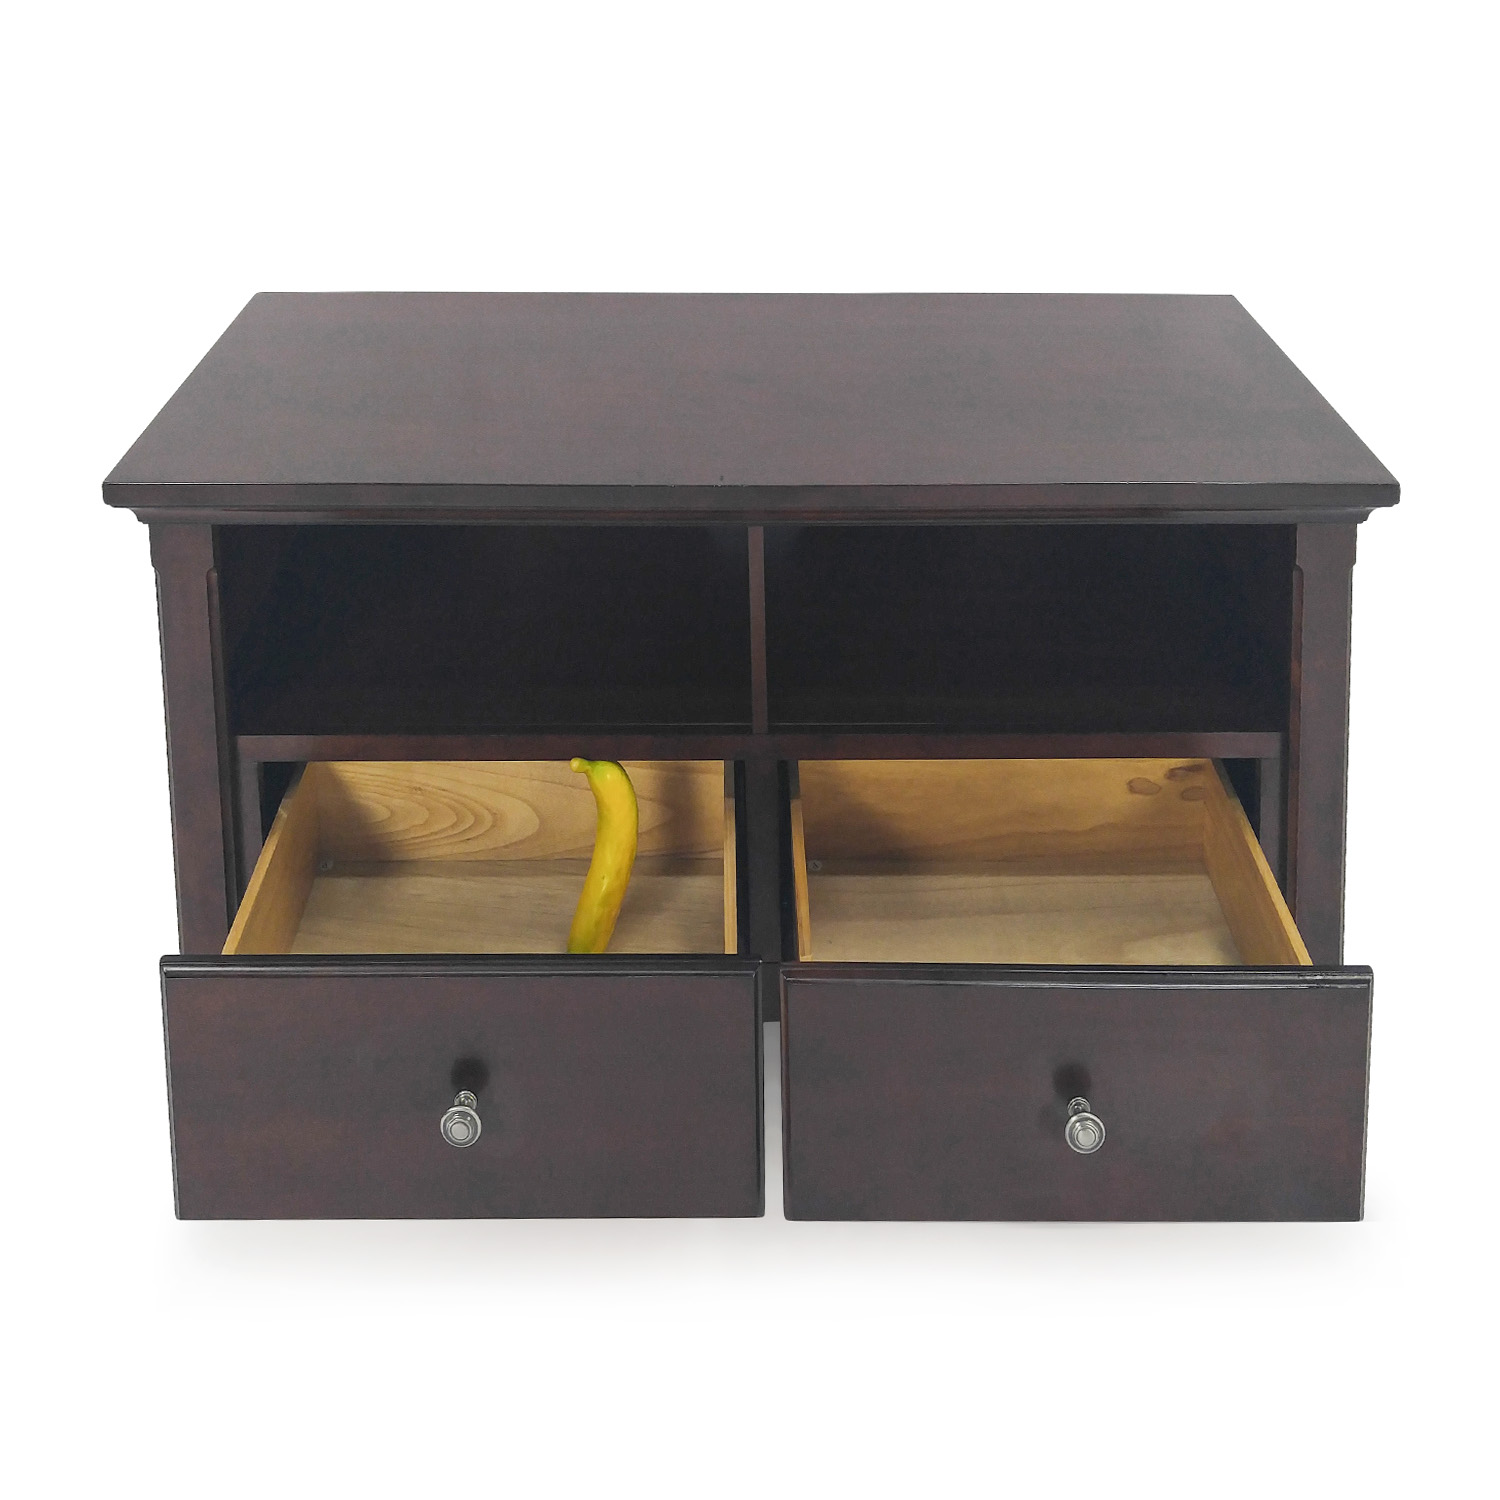 ... Buy Cherry Wood Entertainment Center Unknown Brand Storage ...